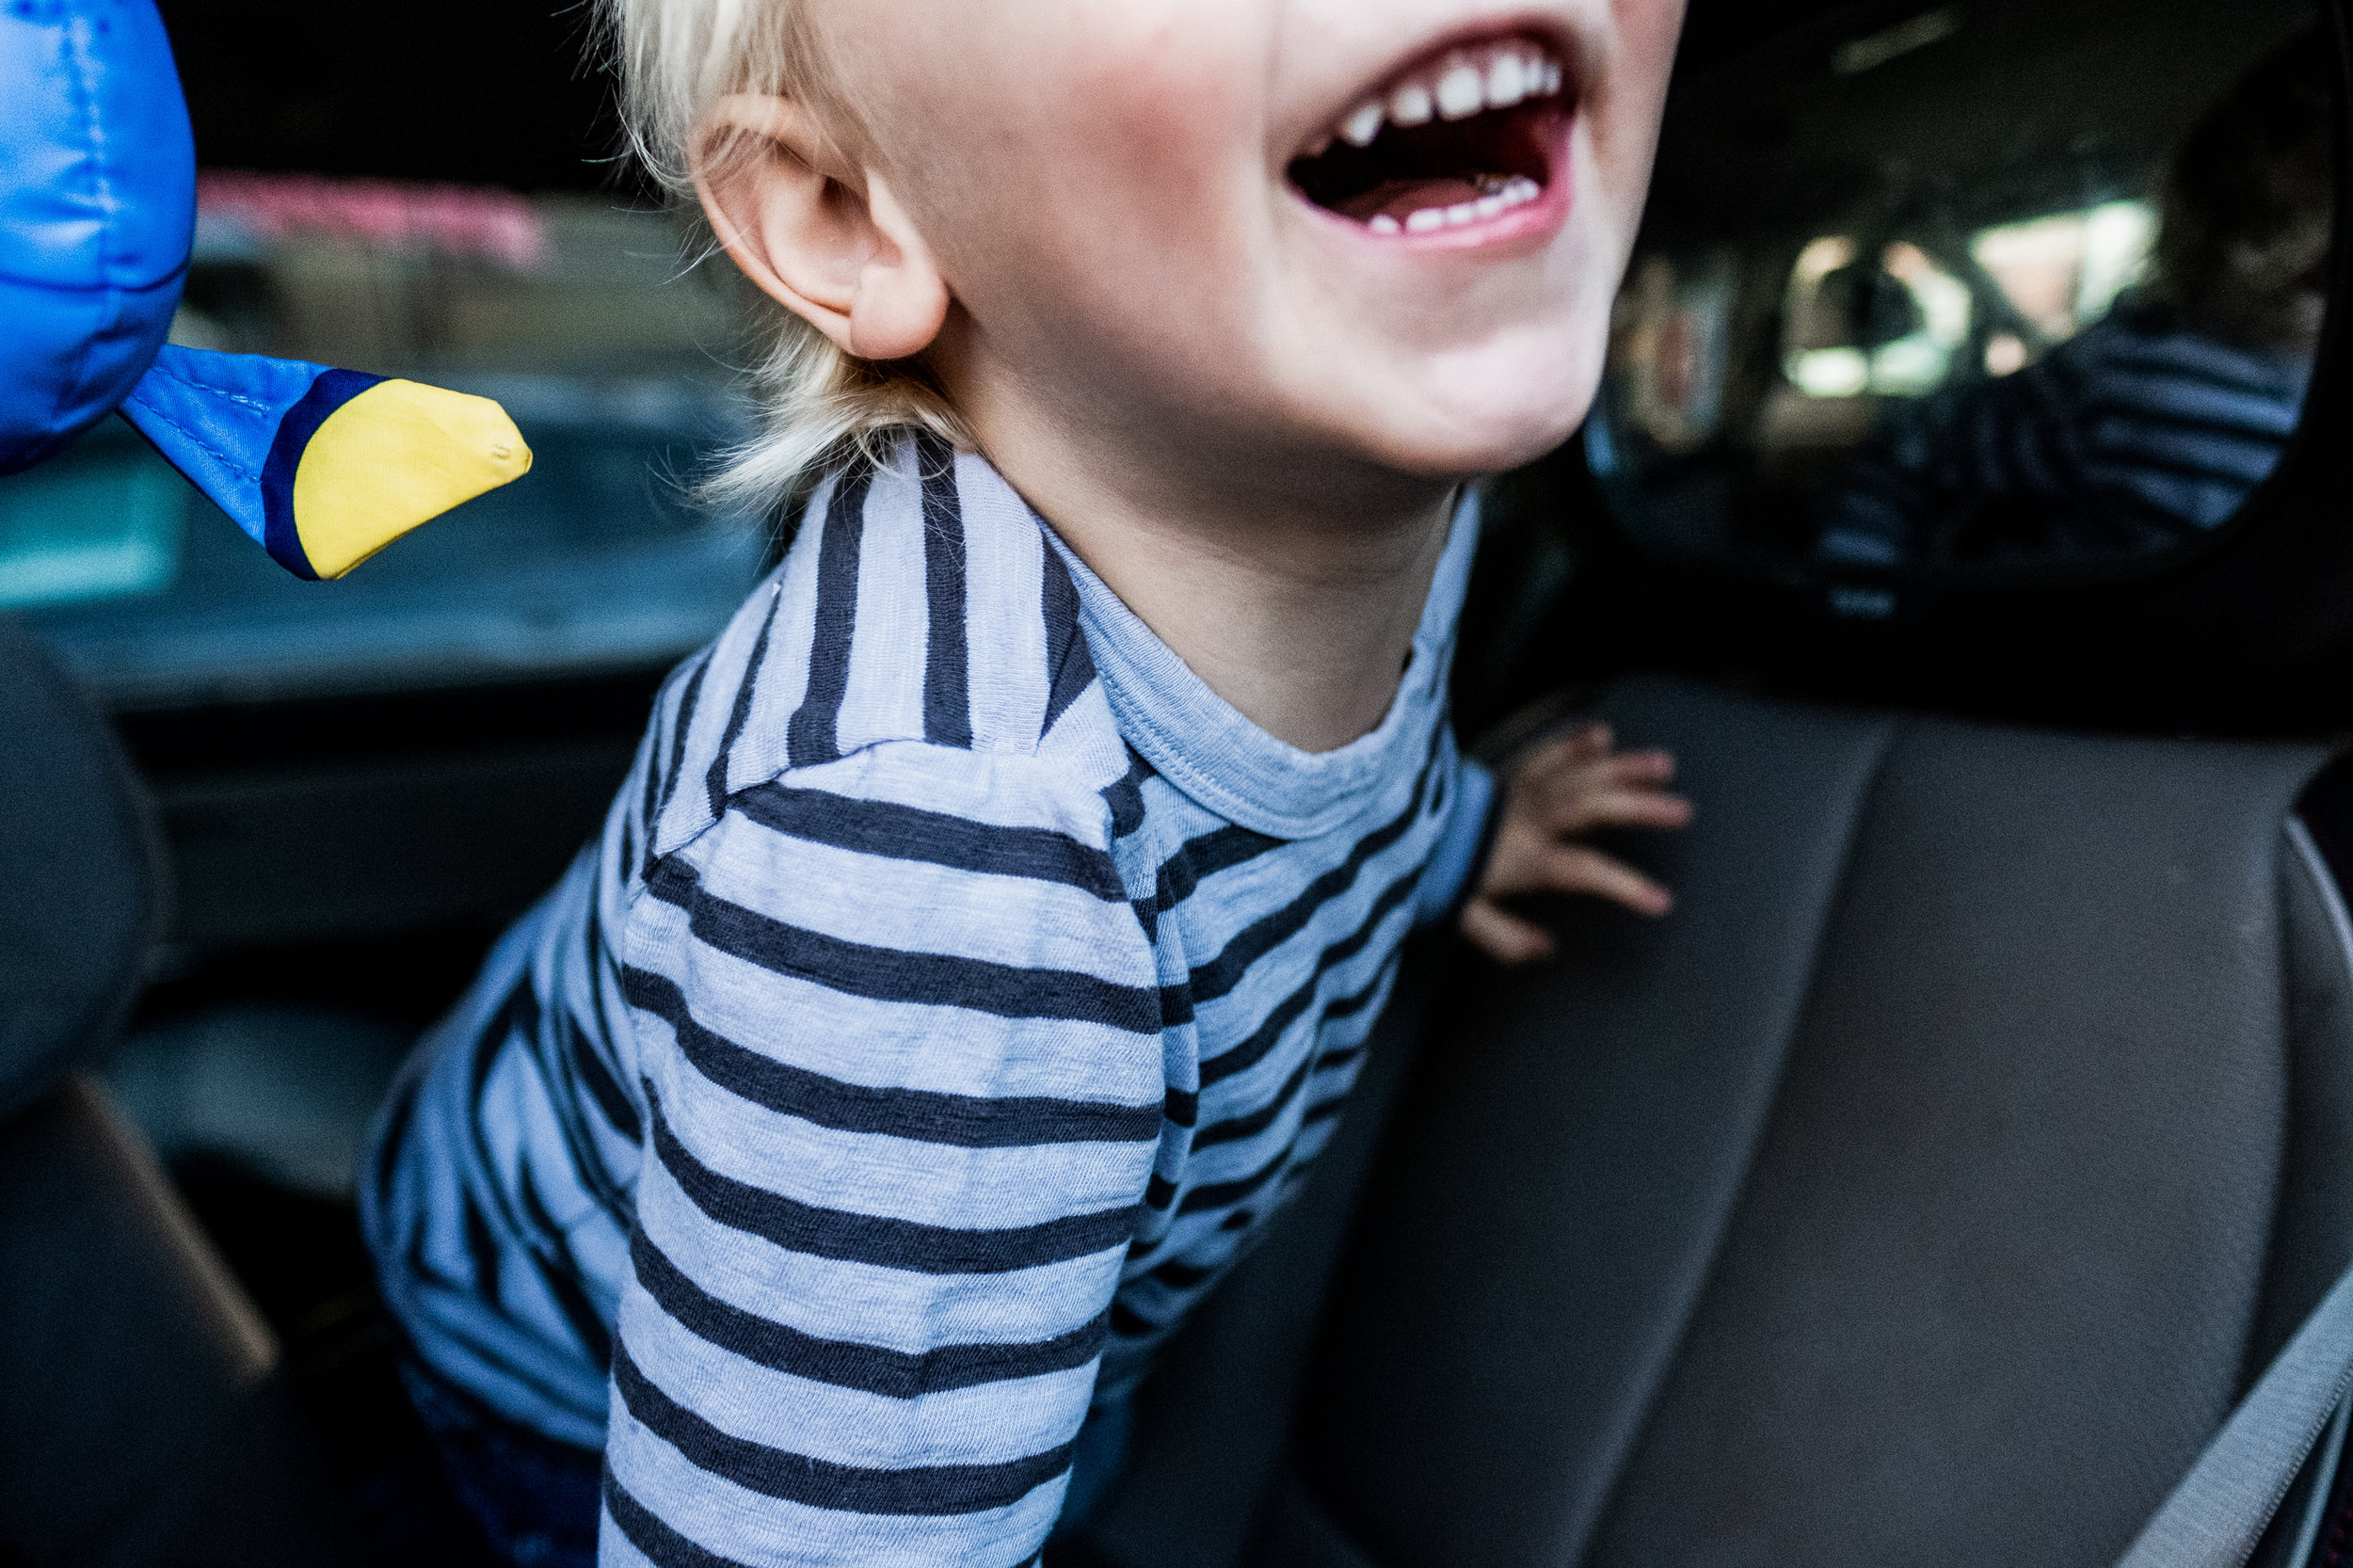 boy-in-car-smile-open-mouth-carseat-toddler